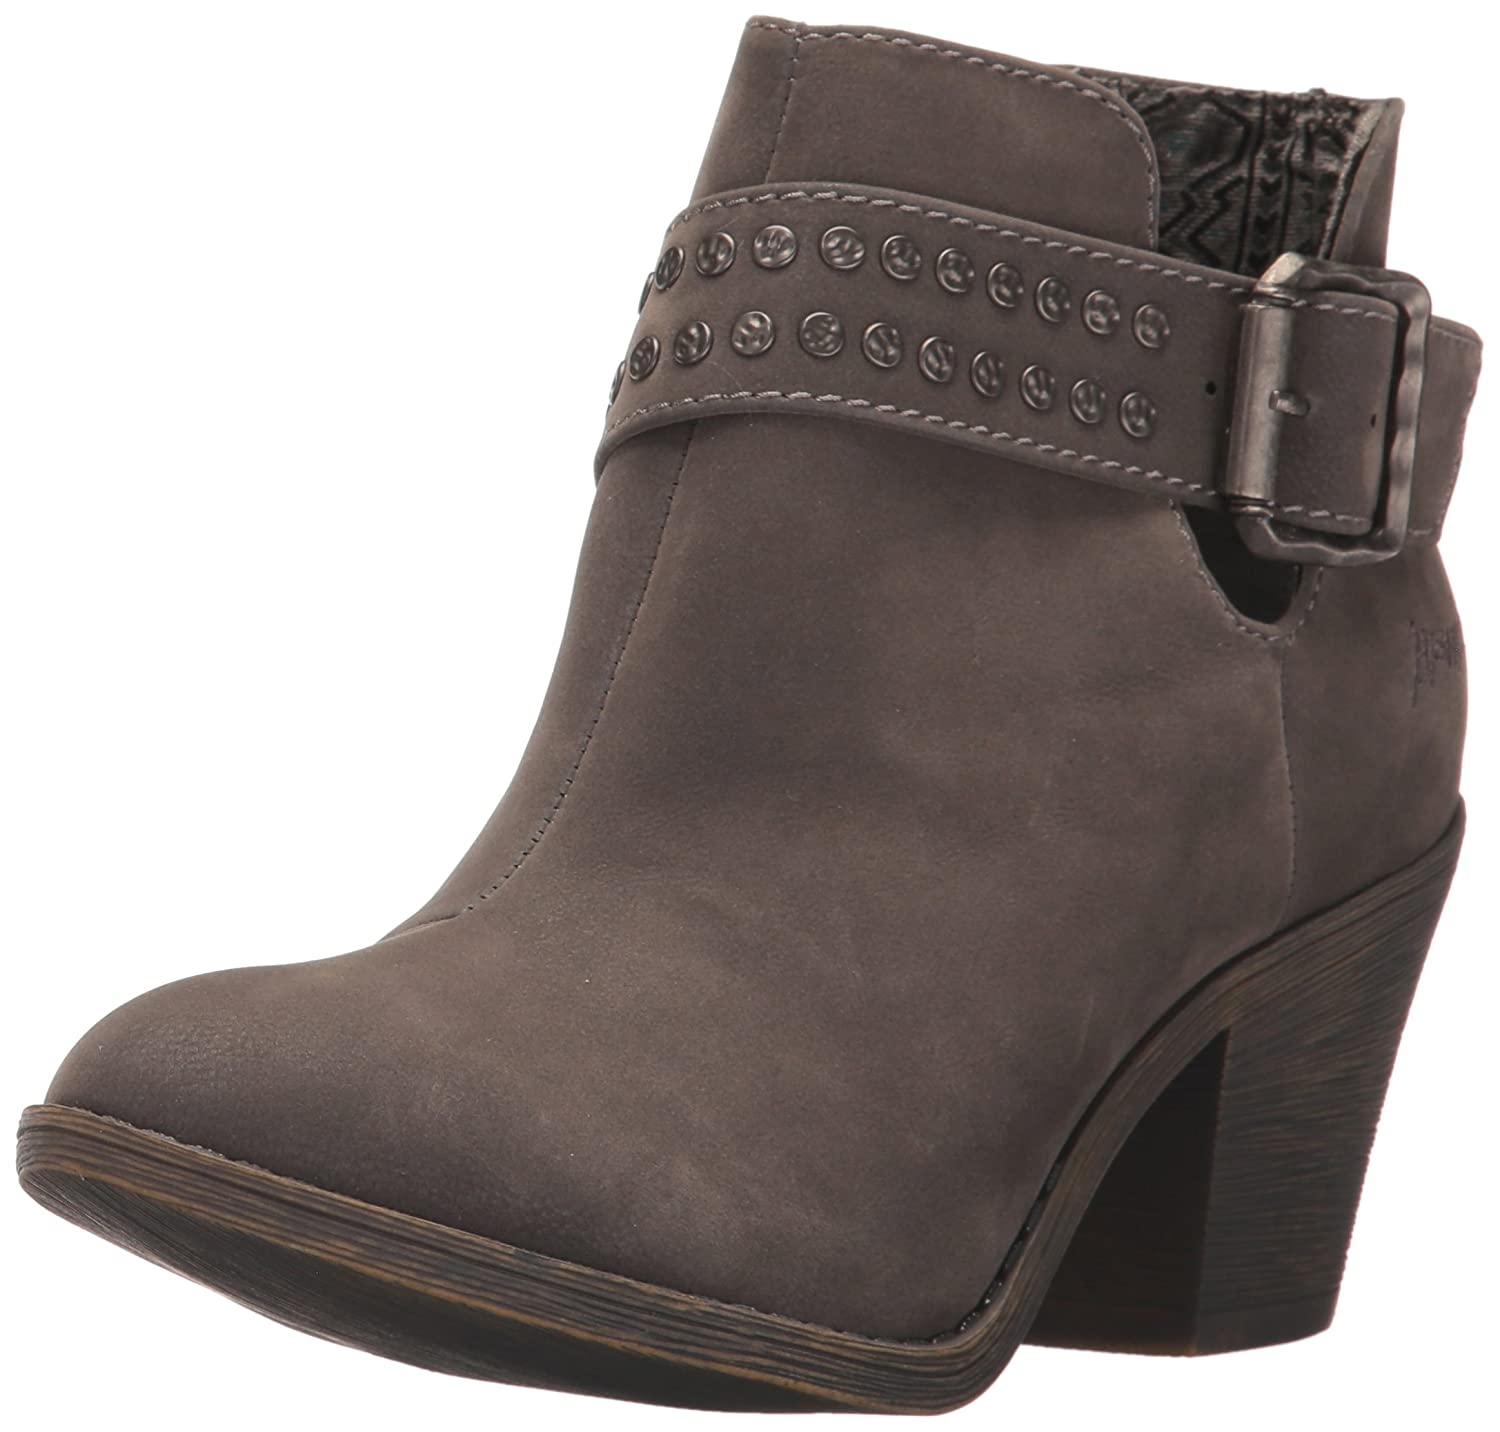 Blowfish Women's Super Ankle Bootie B01NCOKOKT 6.5 B(M) US|Grey Fawn Polyurethane